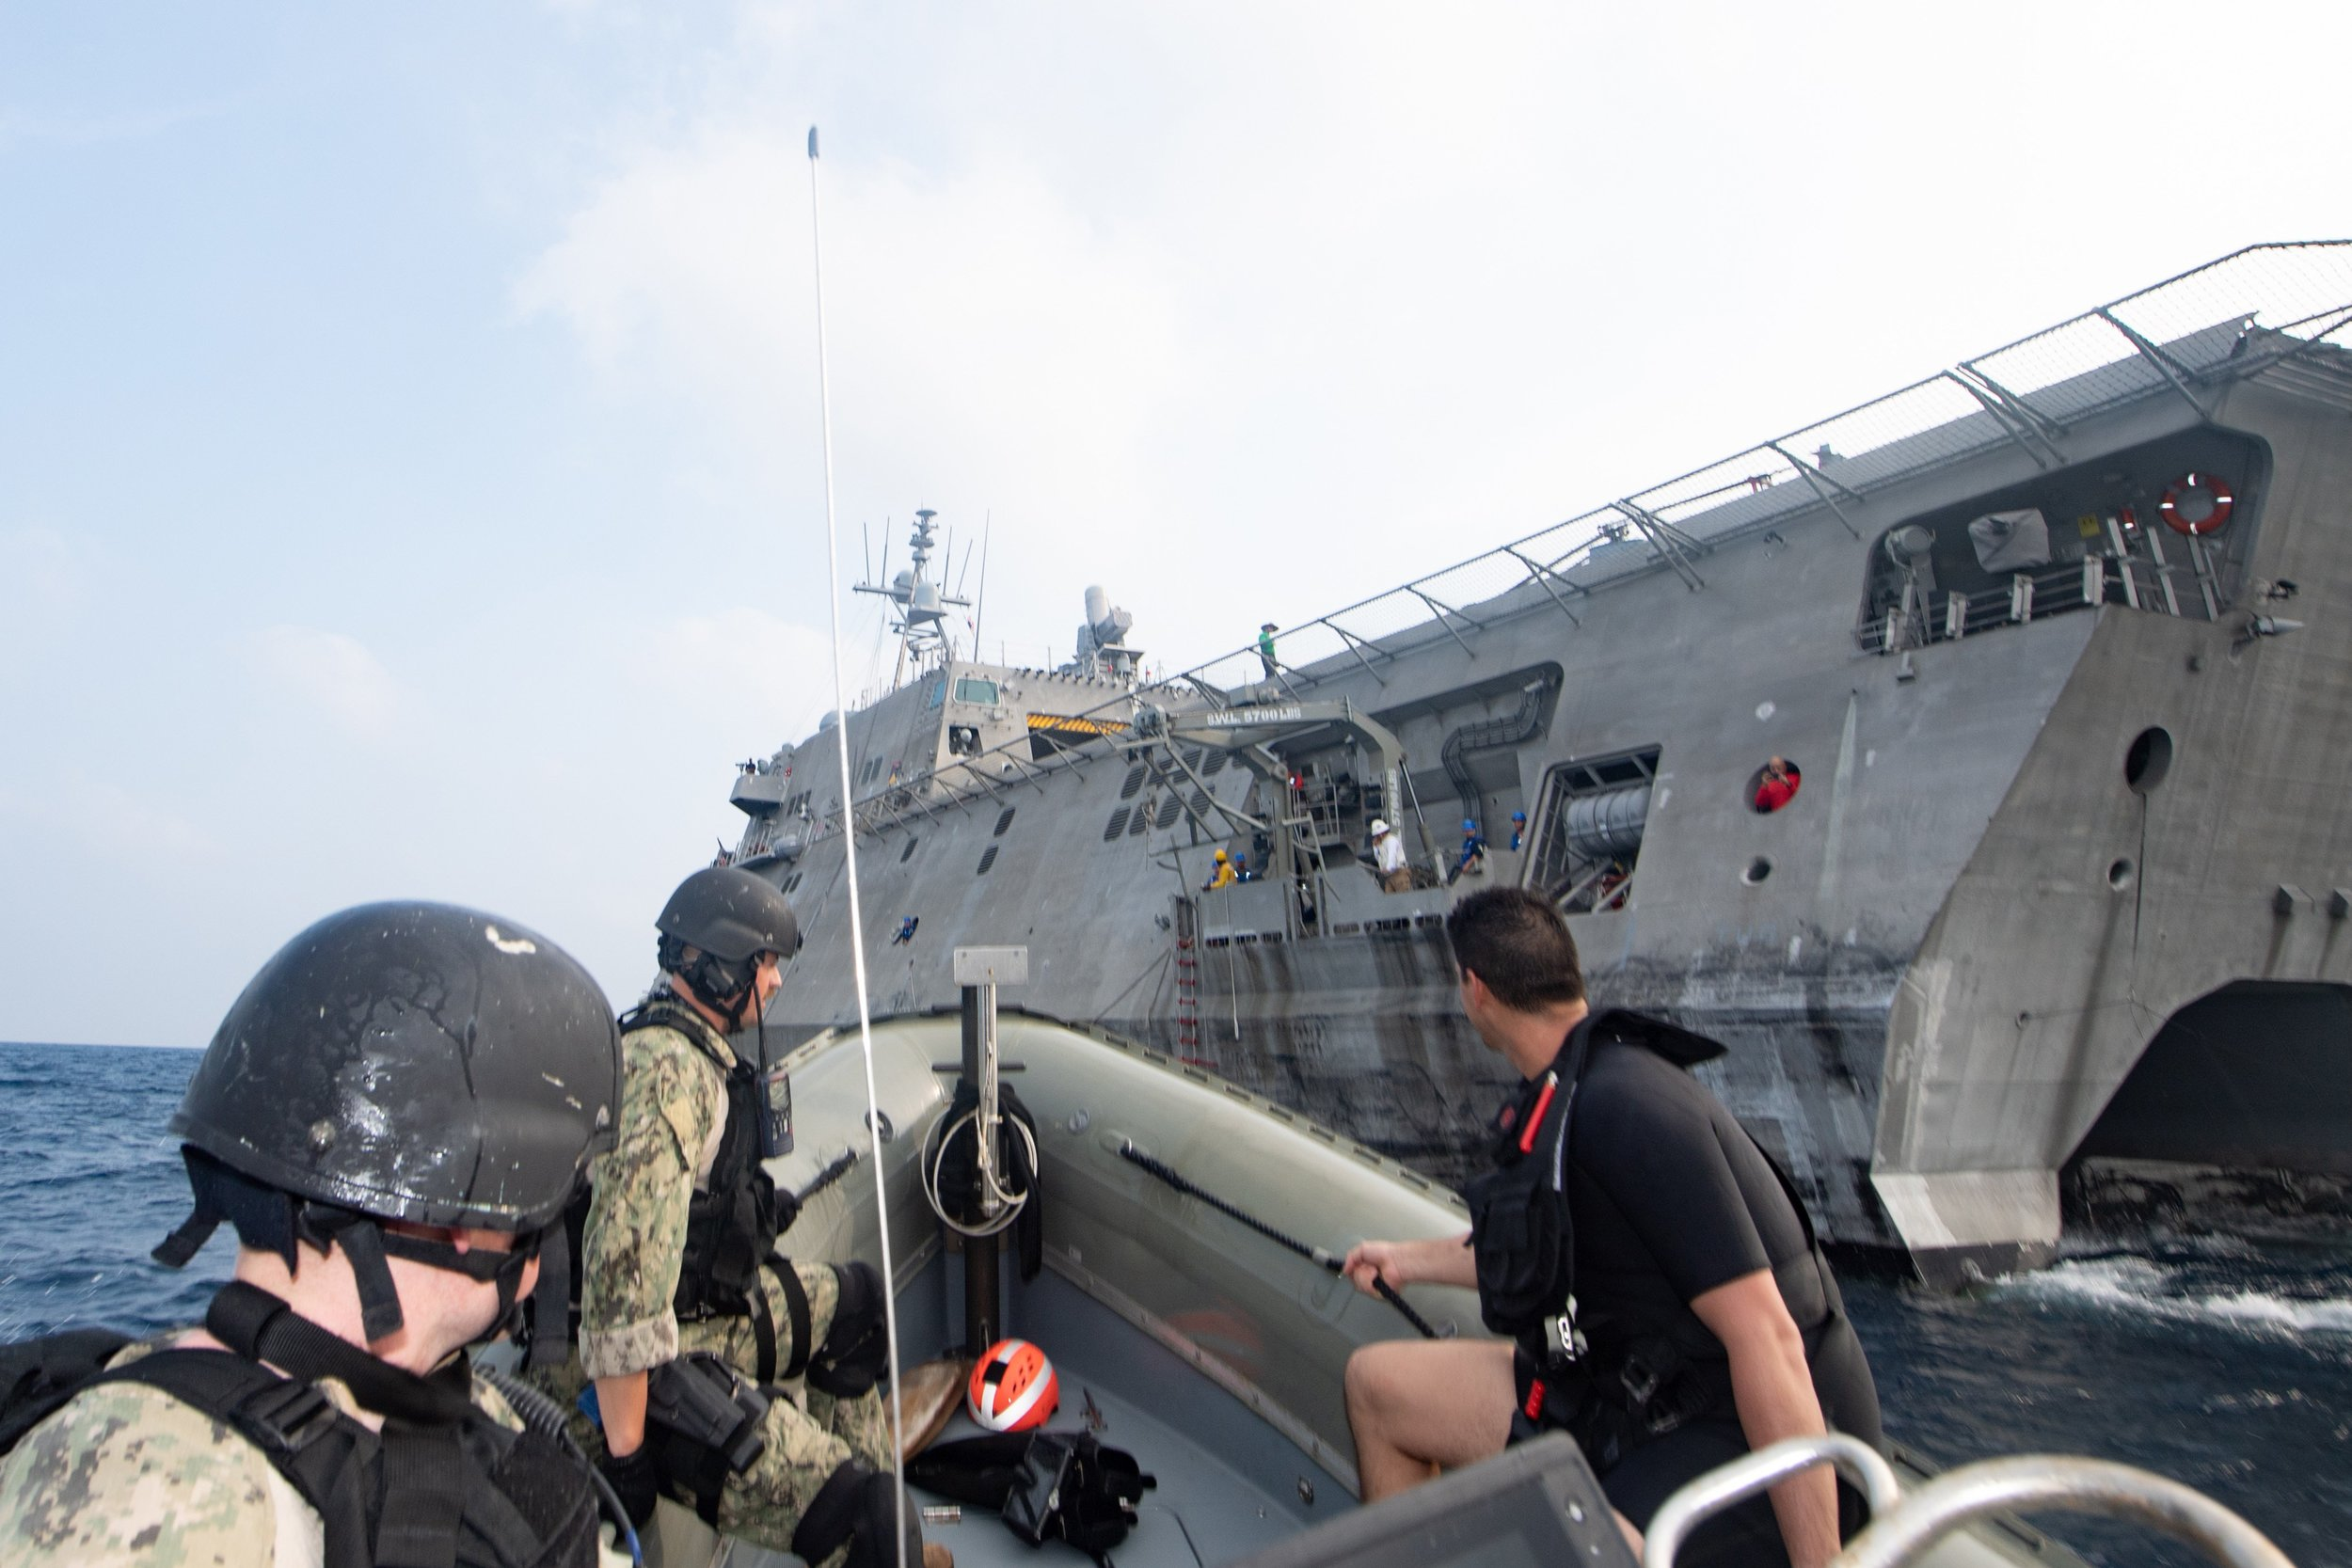 GULF OF THAILAND (Sept. 4, 2019) – U.S. Navy Sailors return to the Independence-variant littoral combat ship USS Montgomery (LCS 8) following a visit, board, search, and seizure (VBSS) drill as part of the ASEAN-U.S. Maritime Exercise (AUMX). Navy photo